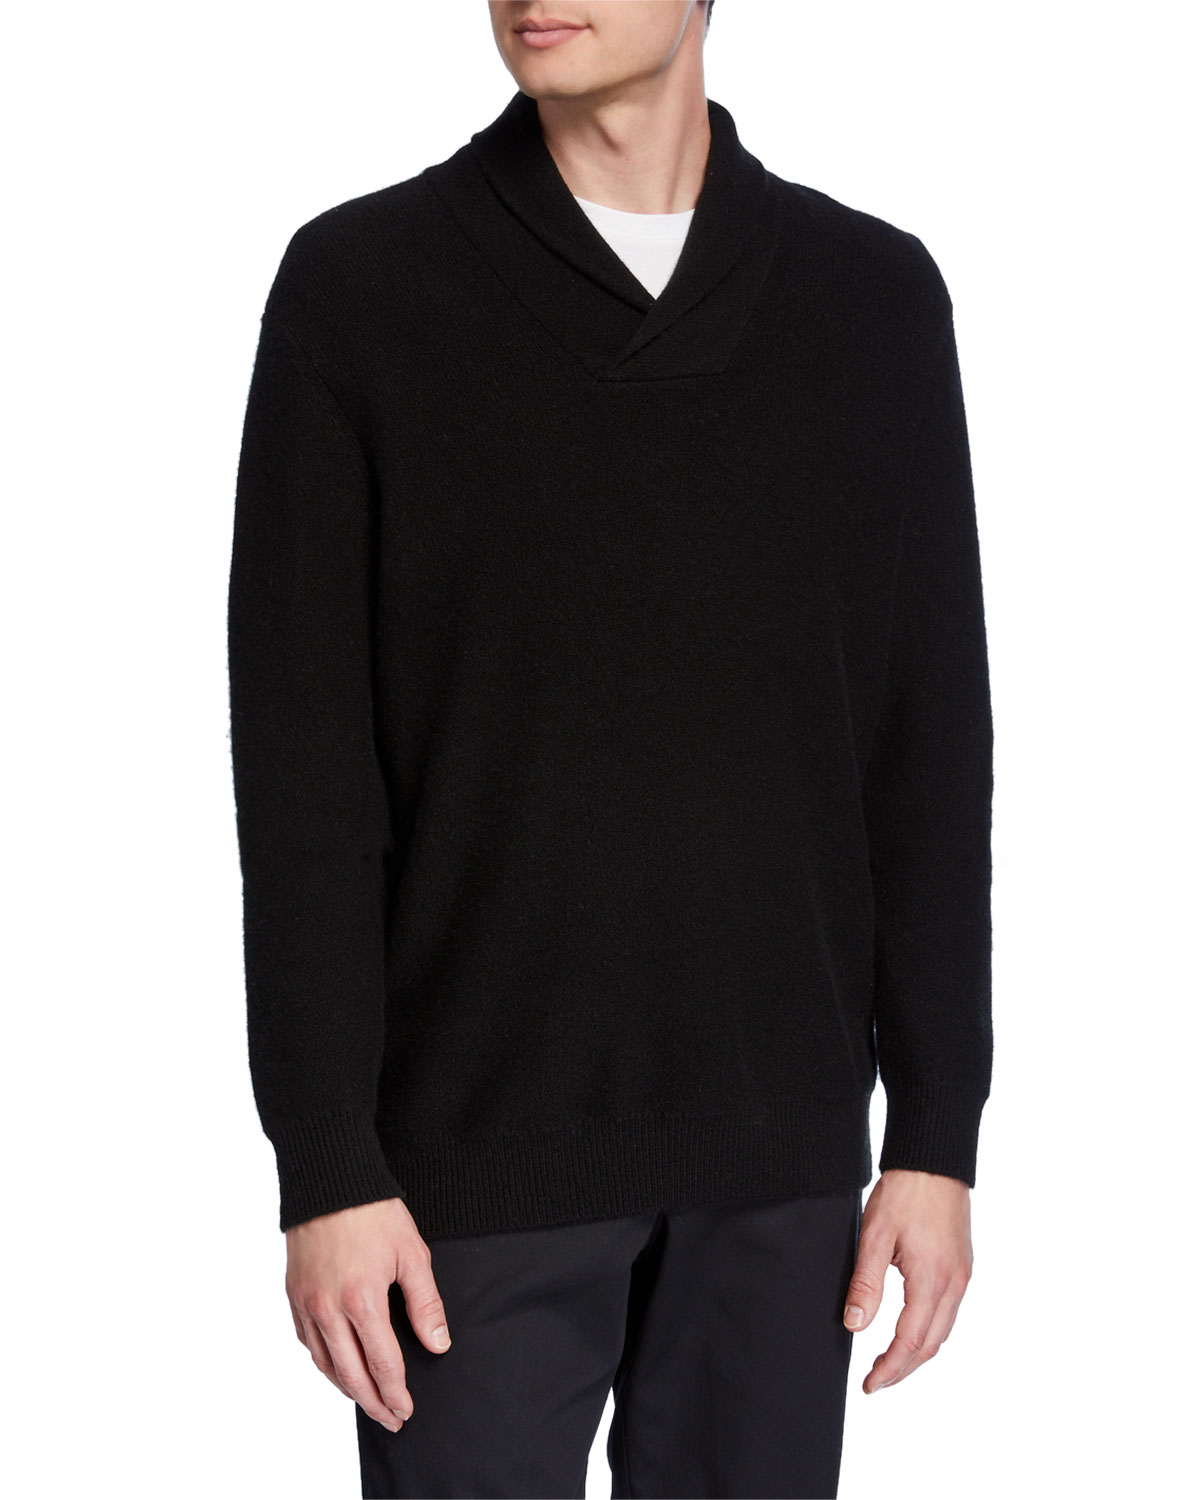 Vince Sweaters MEN'S CASHMERE SHAWL COLLAR POPOVER SWEATER